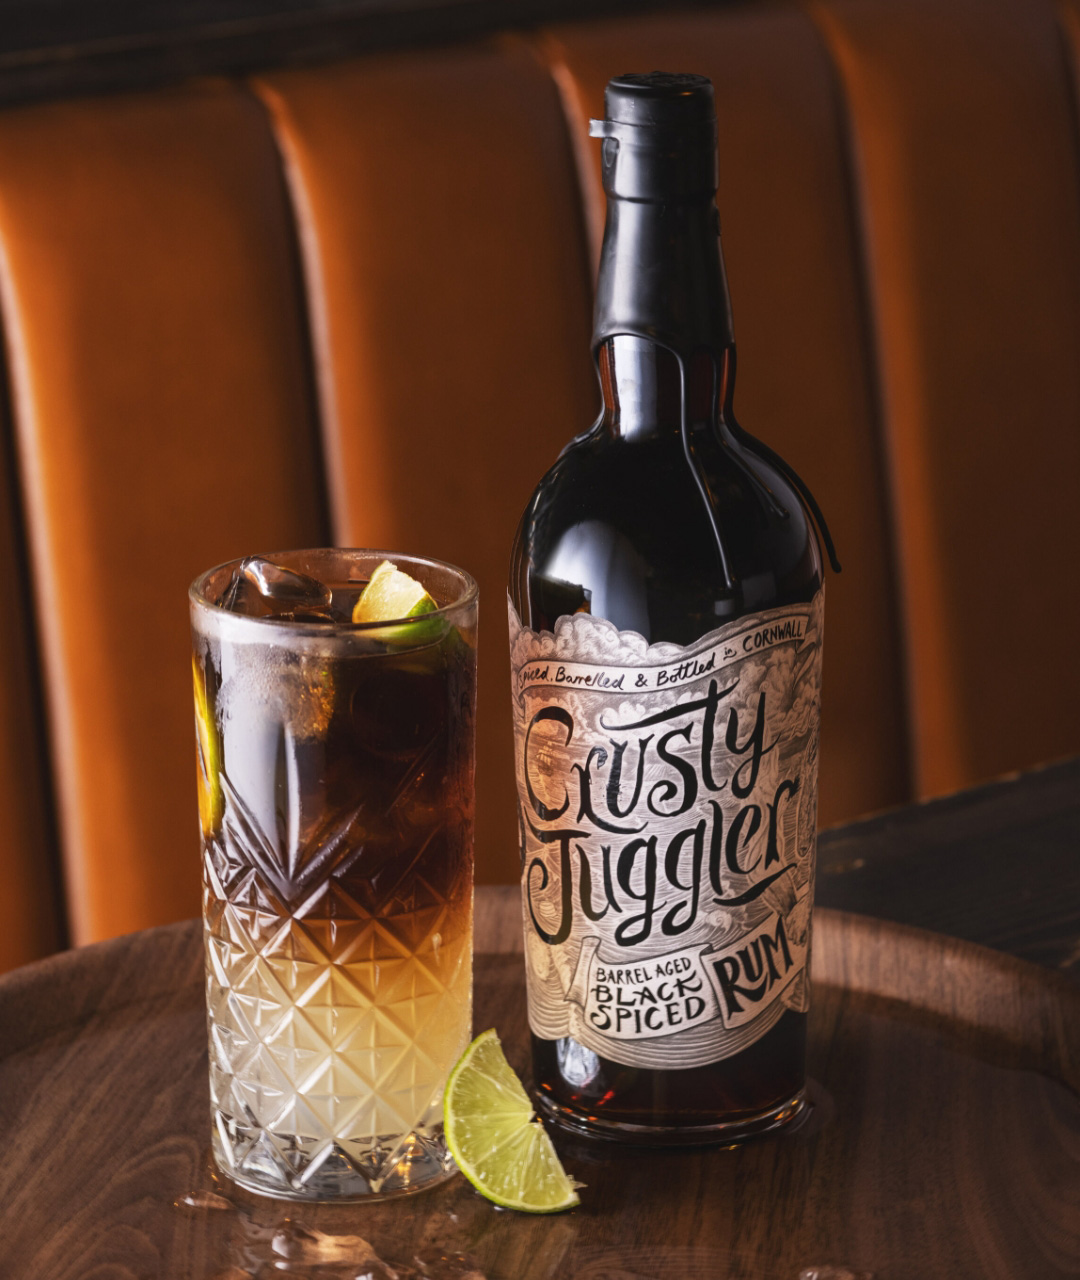 Spiced rum branding by Kingdom & Sparrow, cocktail shots